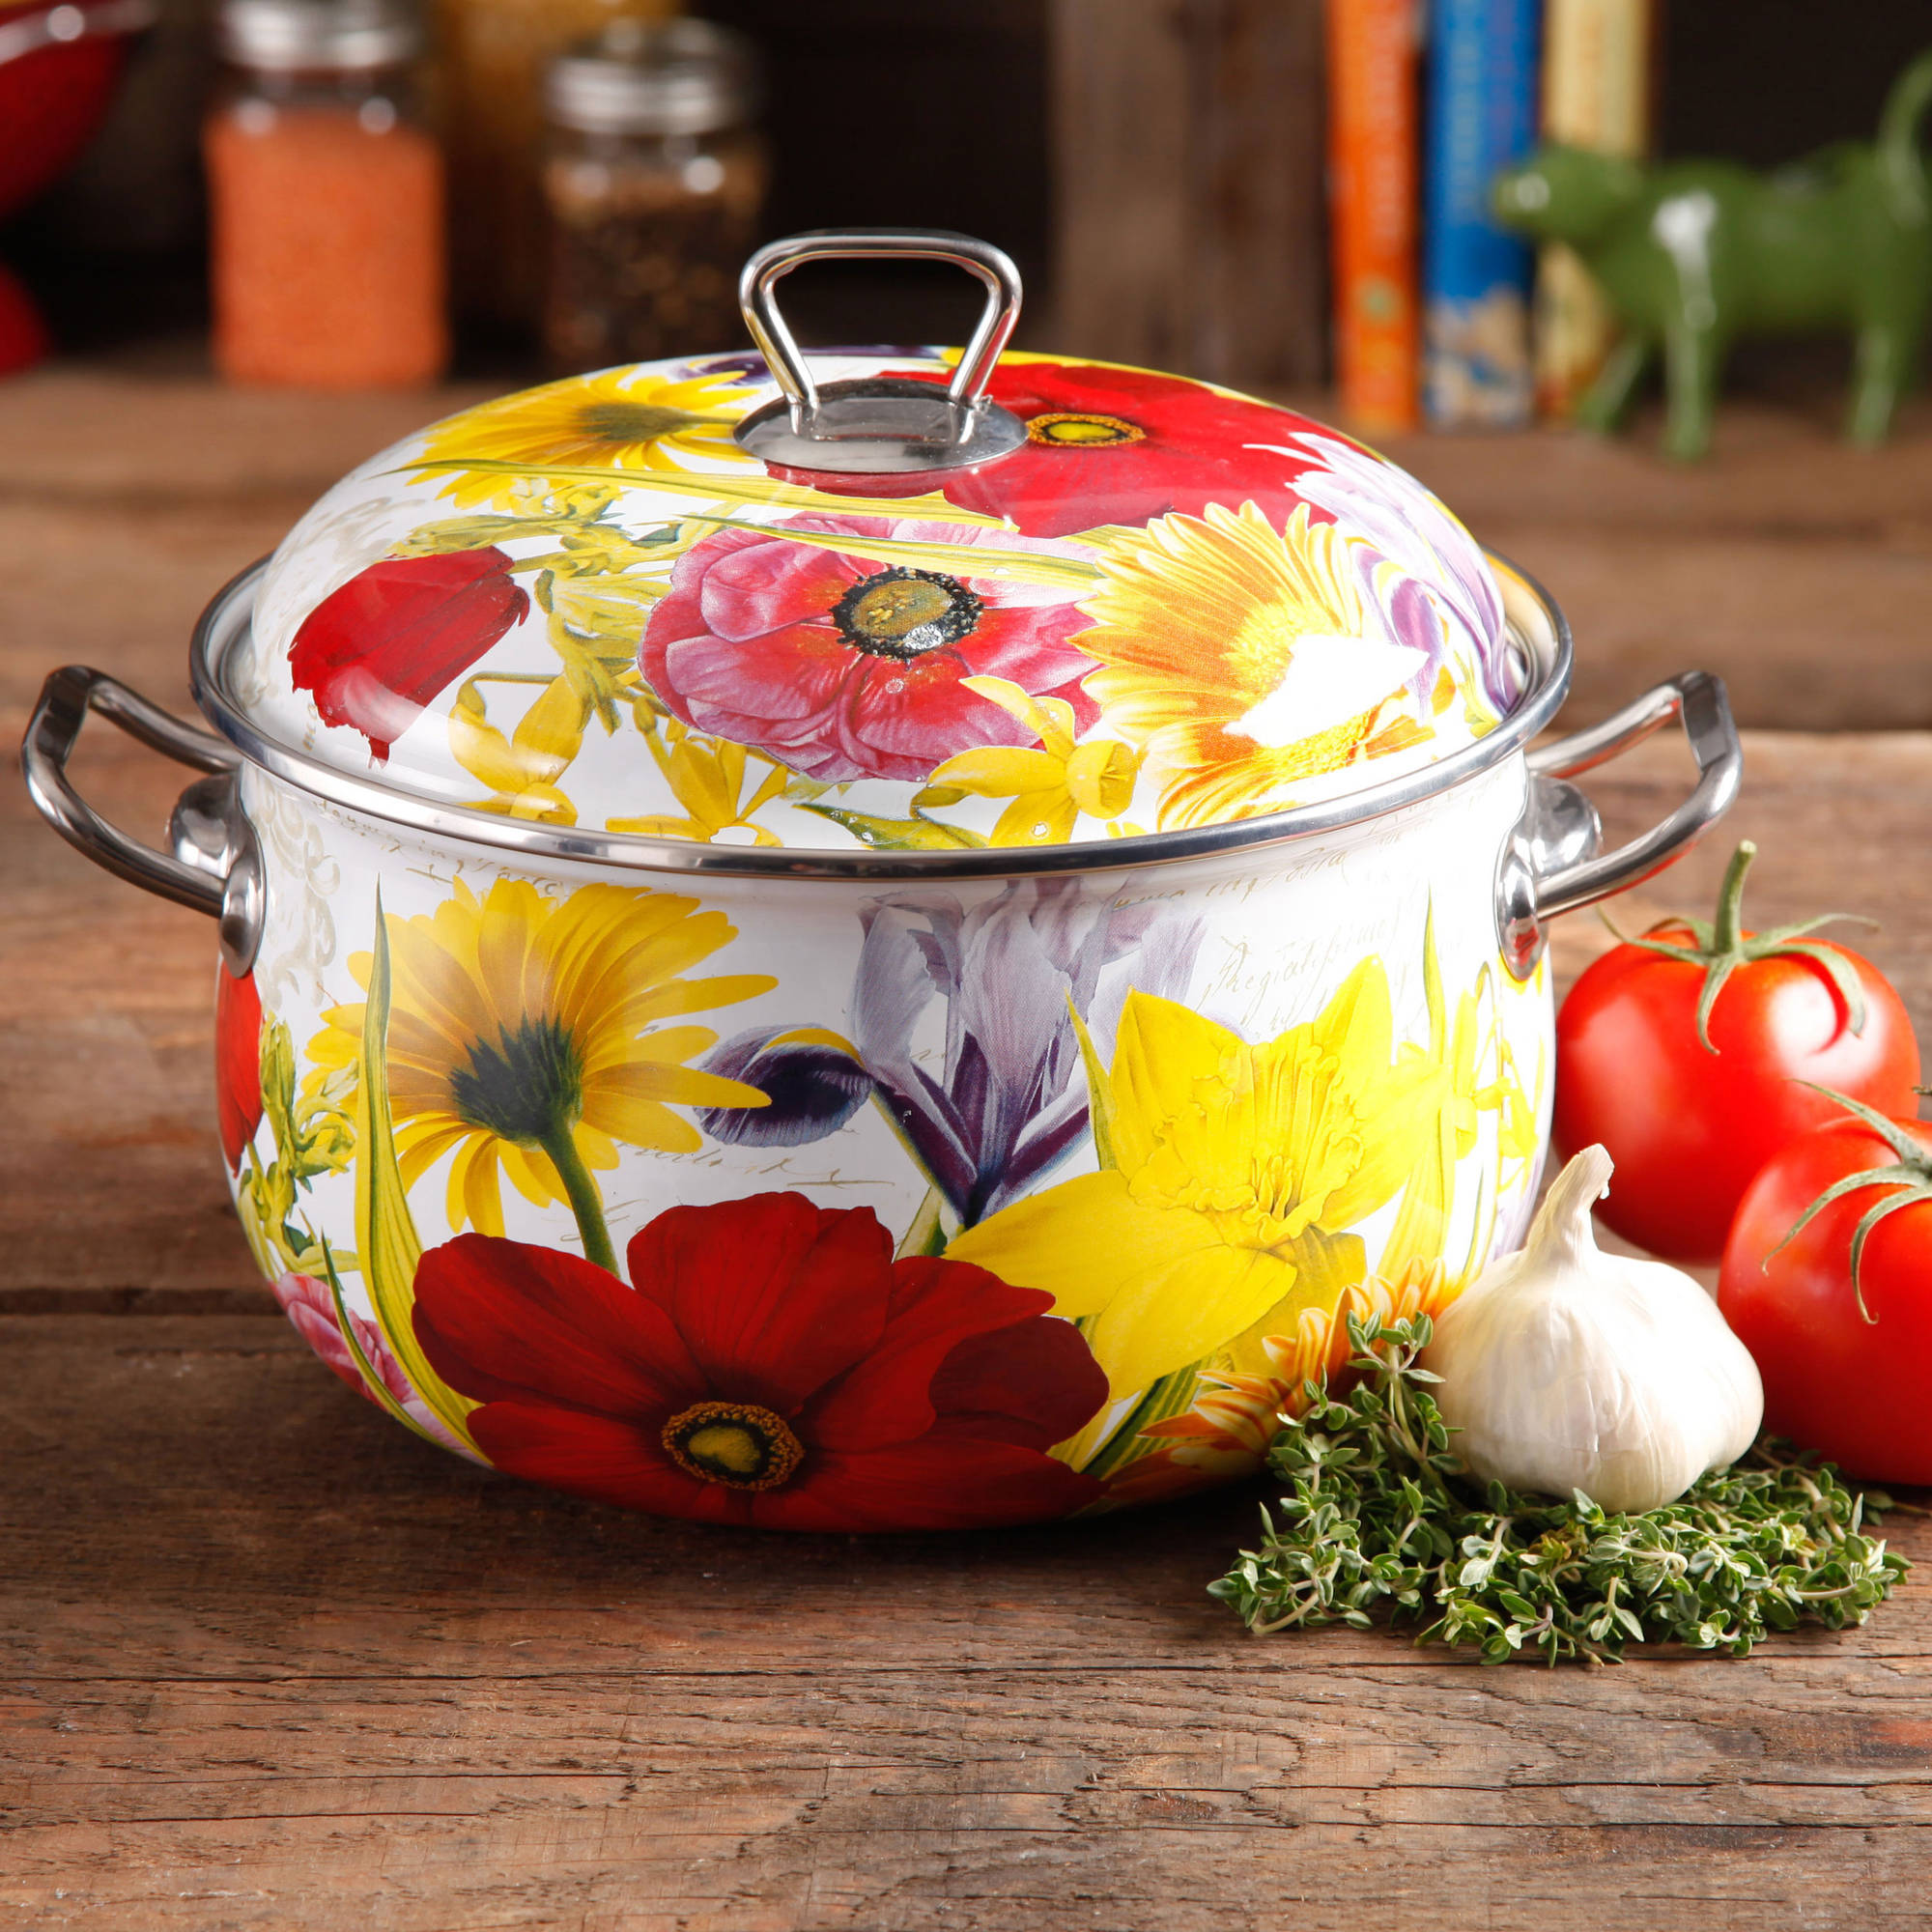 The Pioneer Woman Floral Garden 6.5-Quart Dutch Oven - Walmart.com